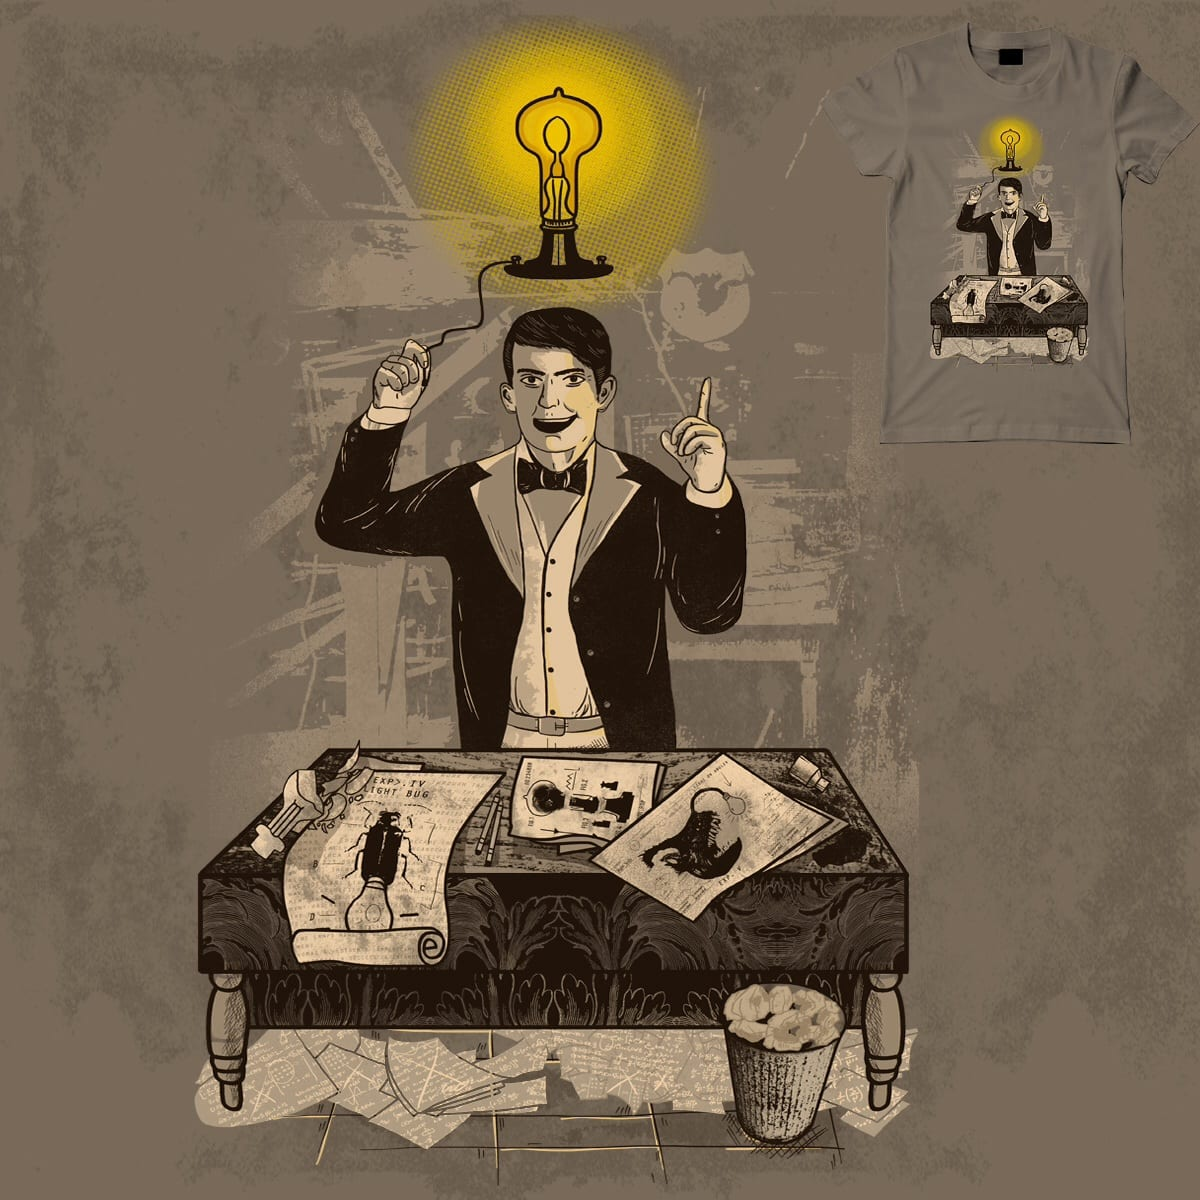 Evolution of a Bright Idea by FRICKINAWESOME and shesmatilda on Threadless